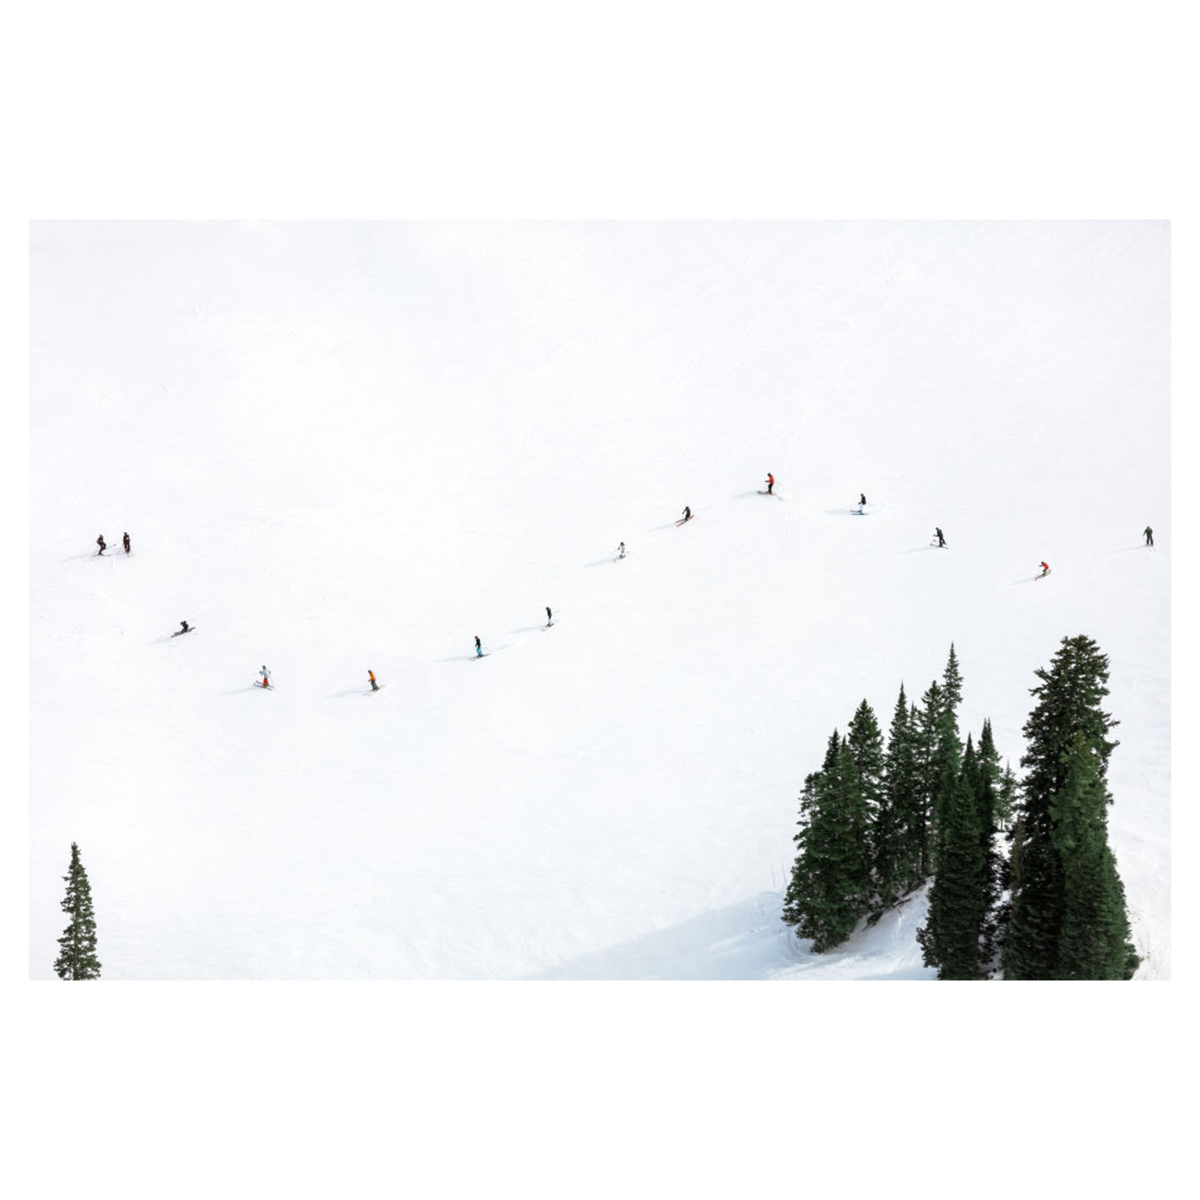 Ski School, Aspen by Gray Malin